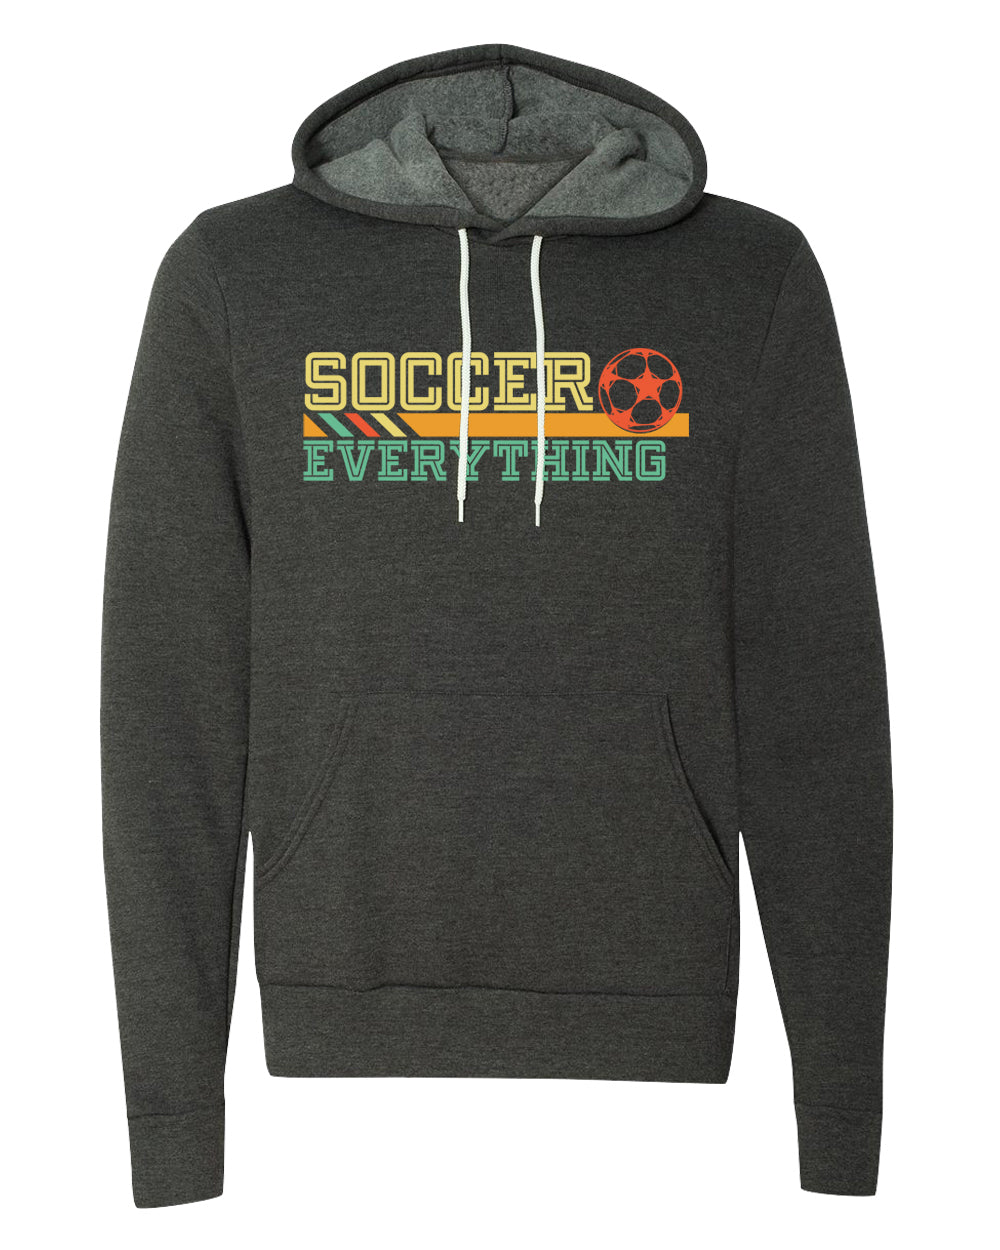 Sweater - Soccer Is Everything, Unisex Hoodies Soccer Hooded Sweatshirts